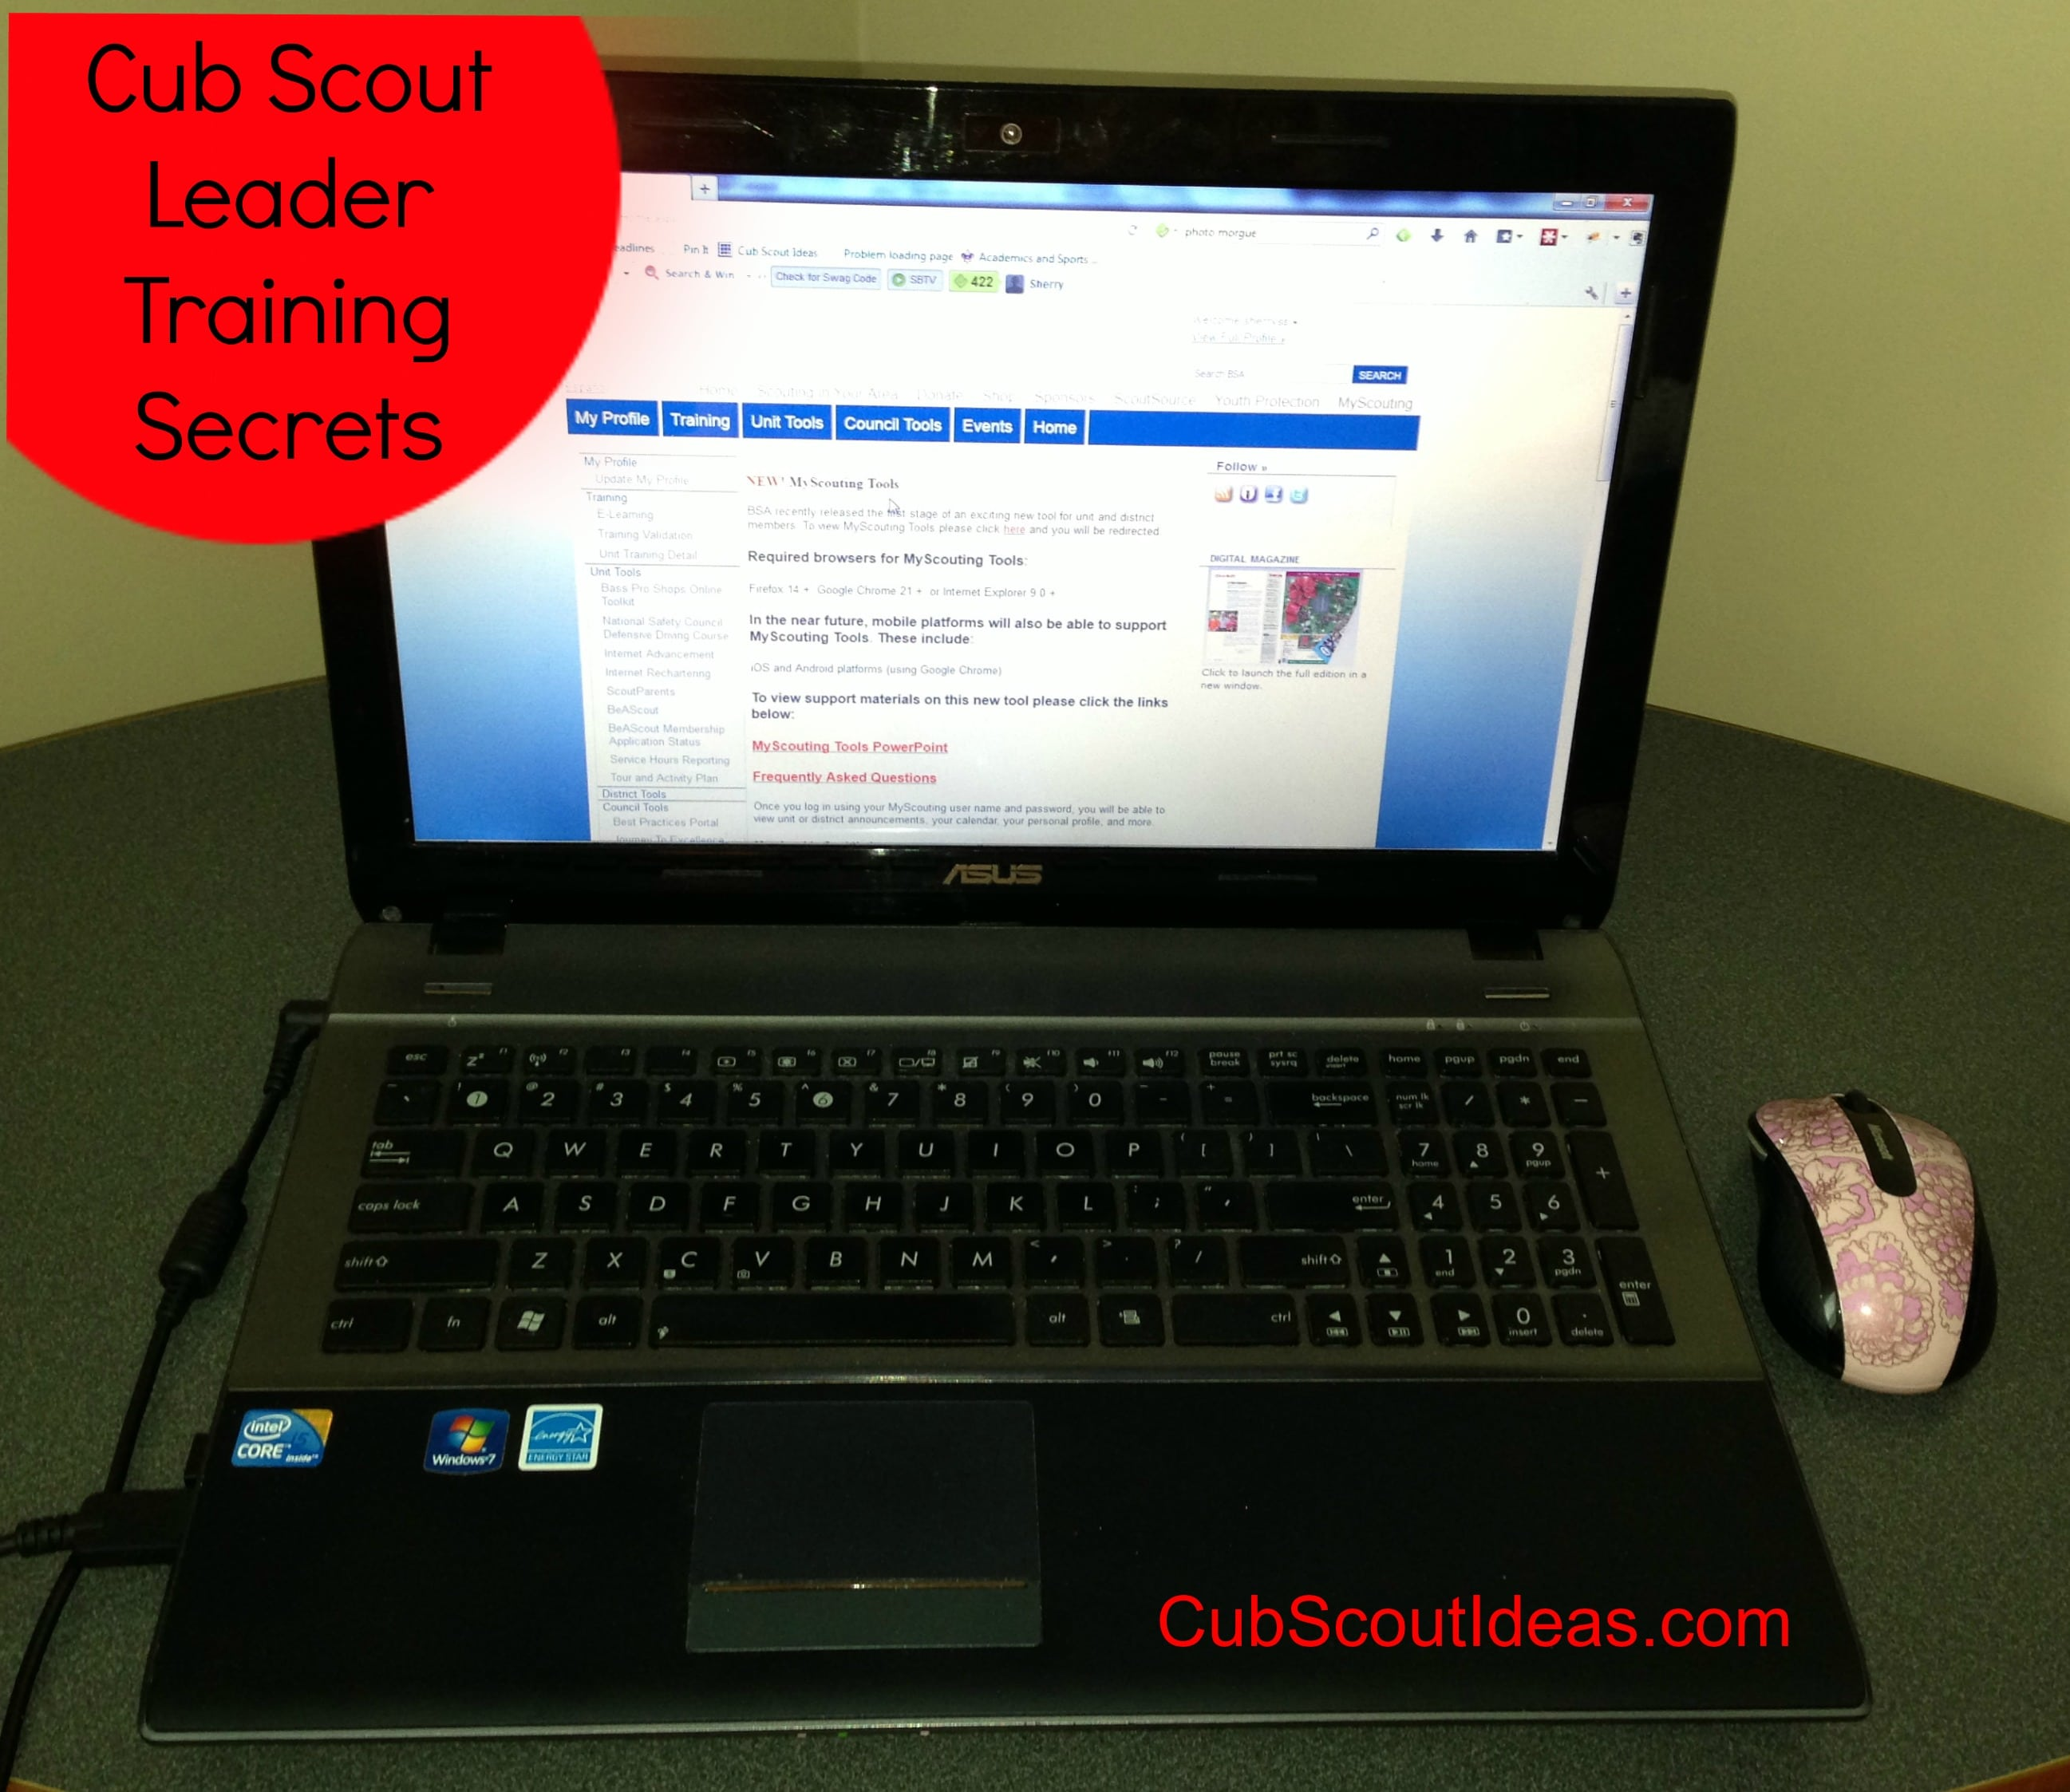 Cub Scout leader training secrets